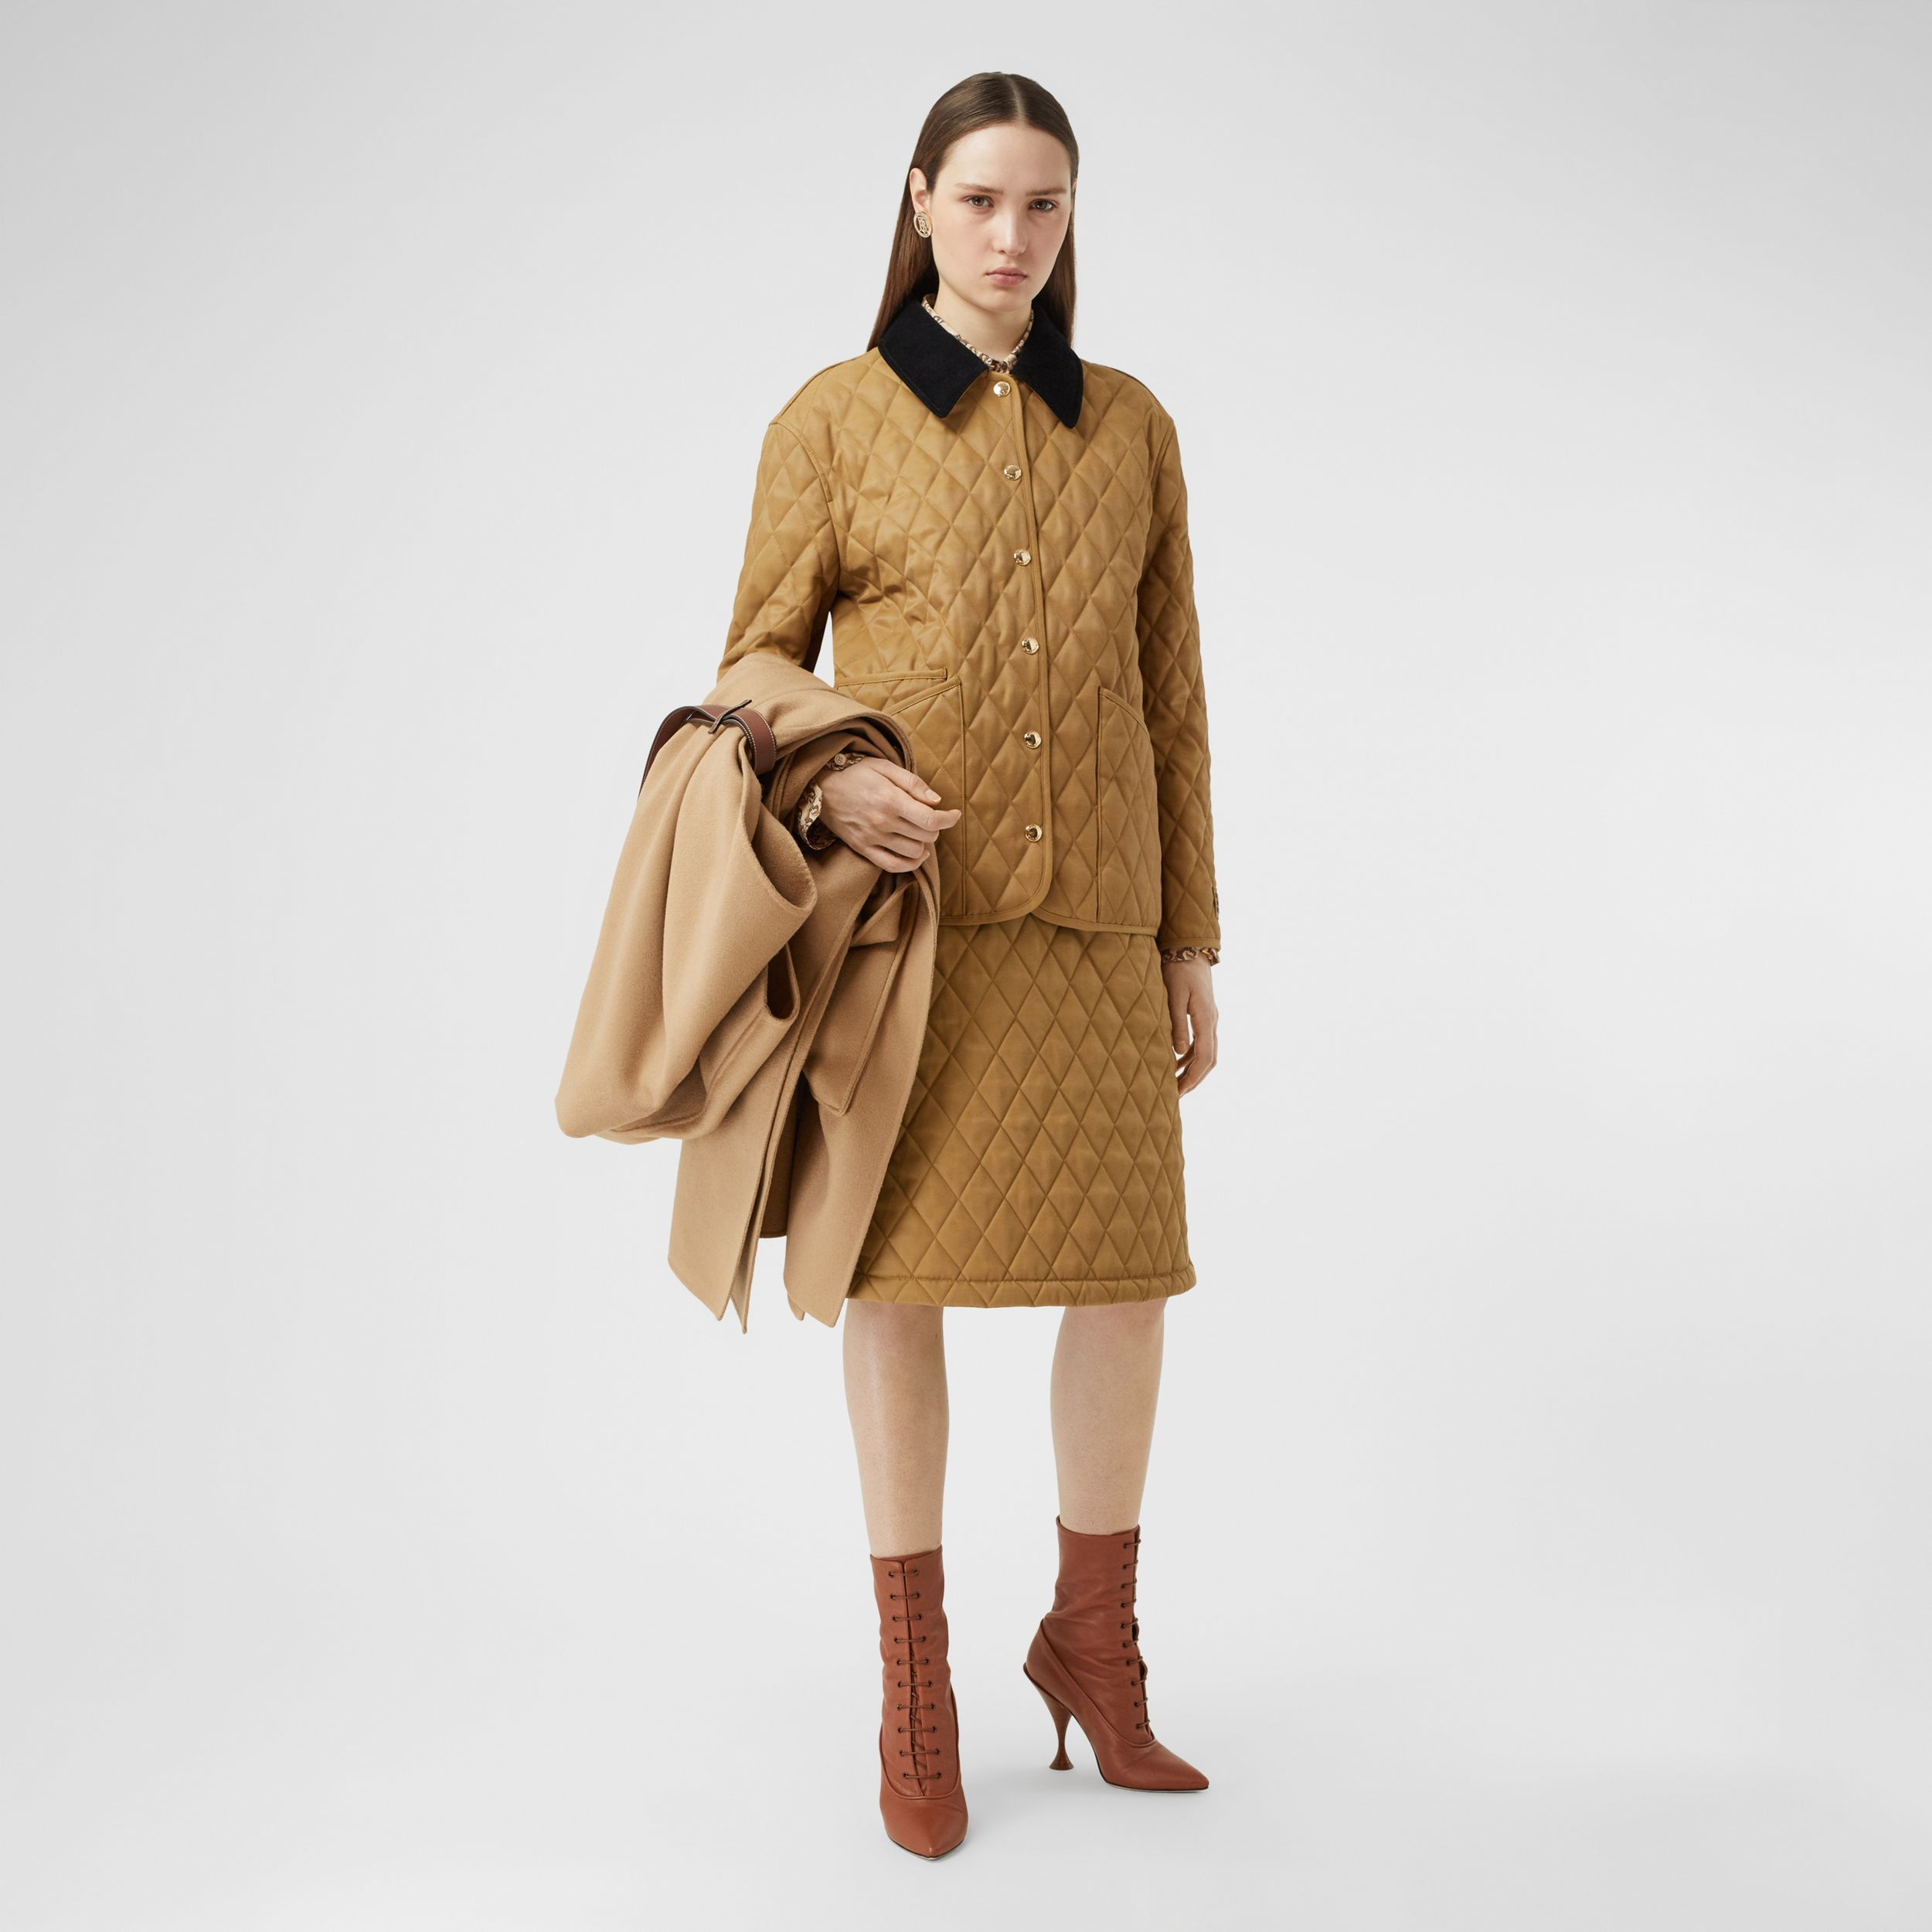 Corduroy Collar Diamond Quilted Jacket in Camel - Women | Burberry Hong Kong S.A.R. - 1